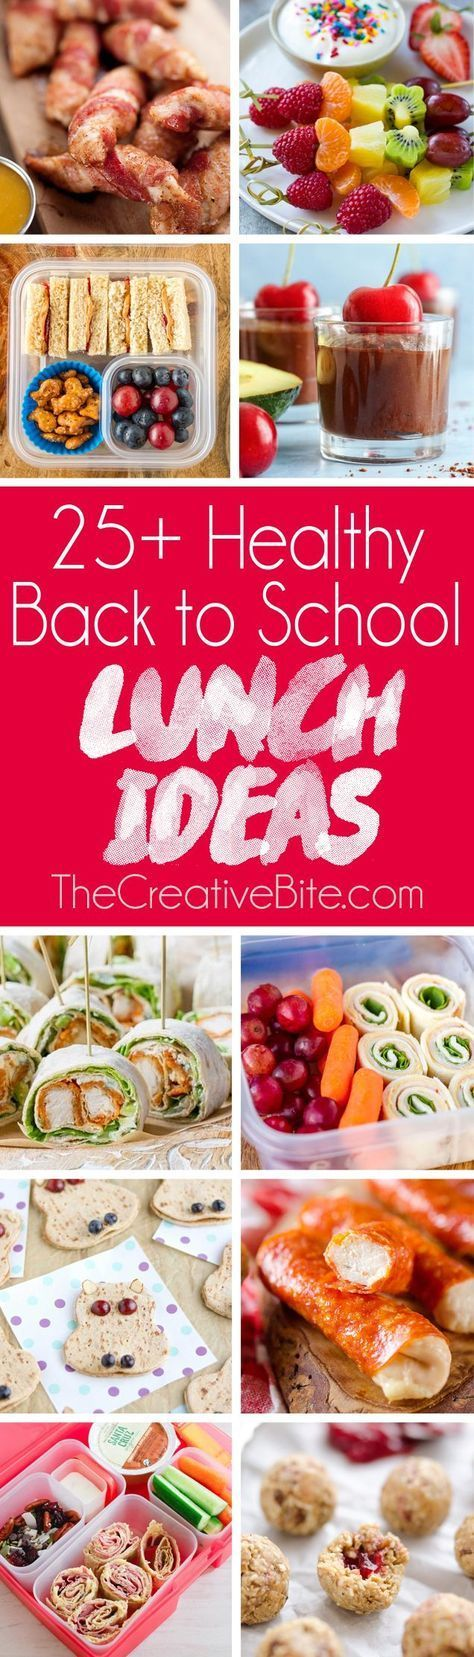 25+ Healthy Back to School Lunch Ideas are perfect for your children's packed lunches. Healthy treats and sweets to light meals and easy snacks. #schoollunchideasforkids